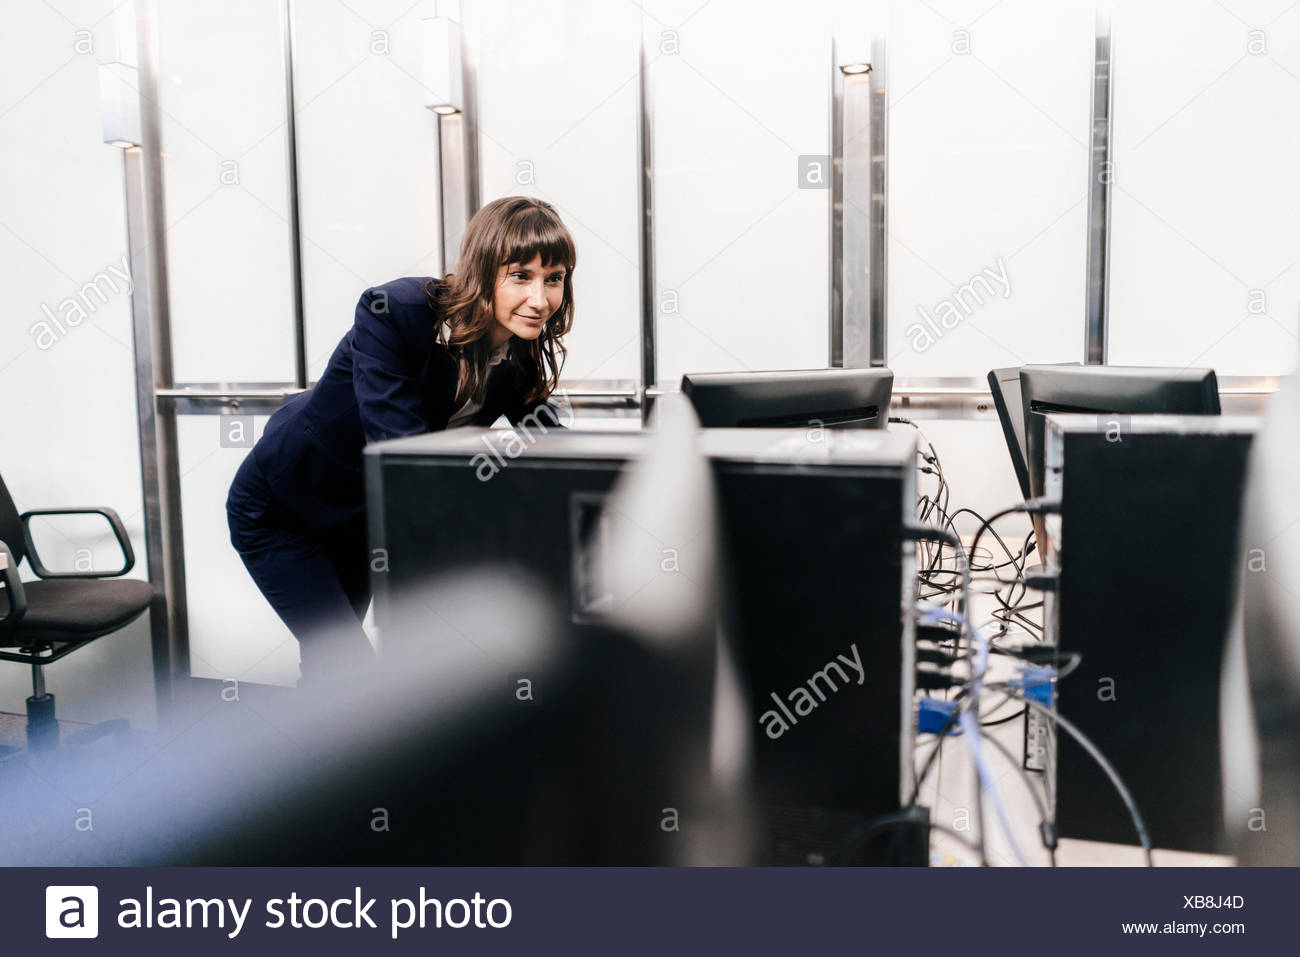 Successful businesswoman looking at monitors in office - Stock Image